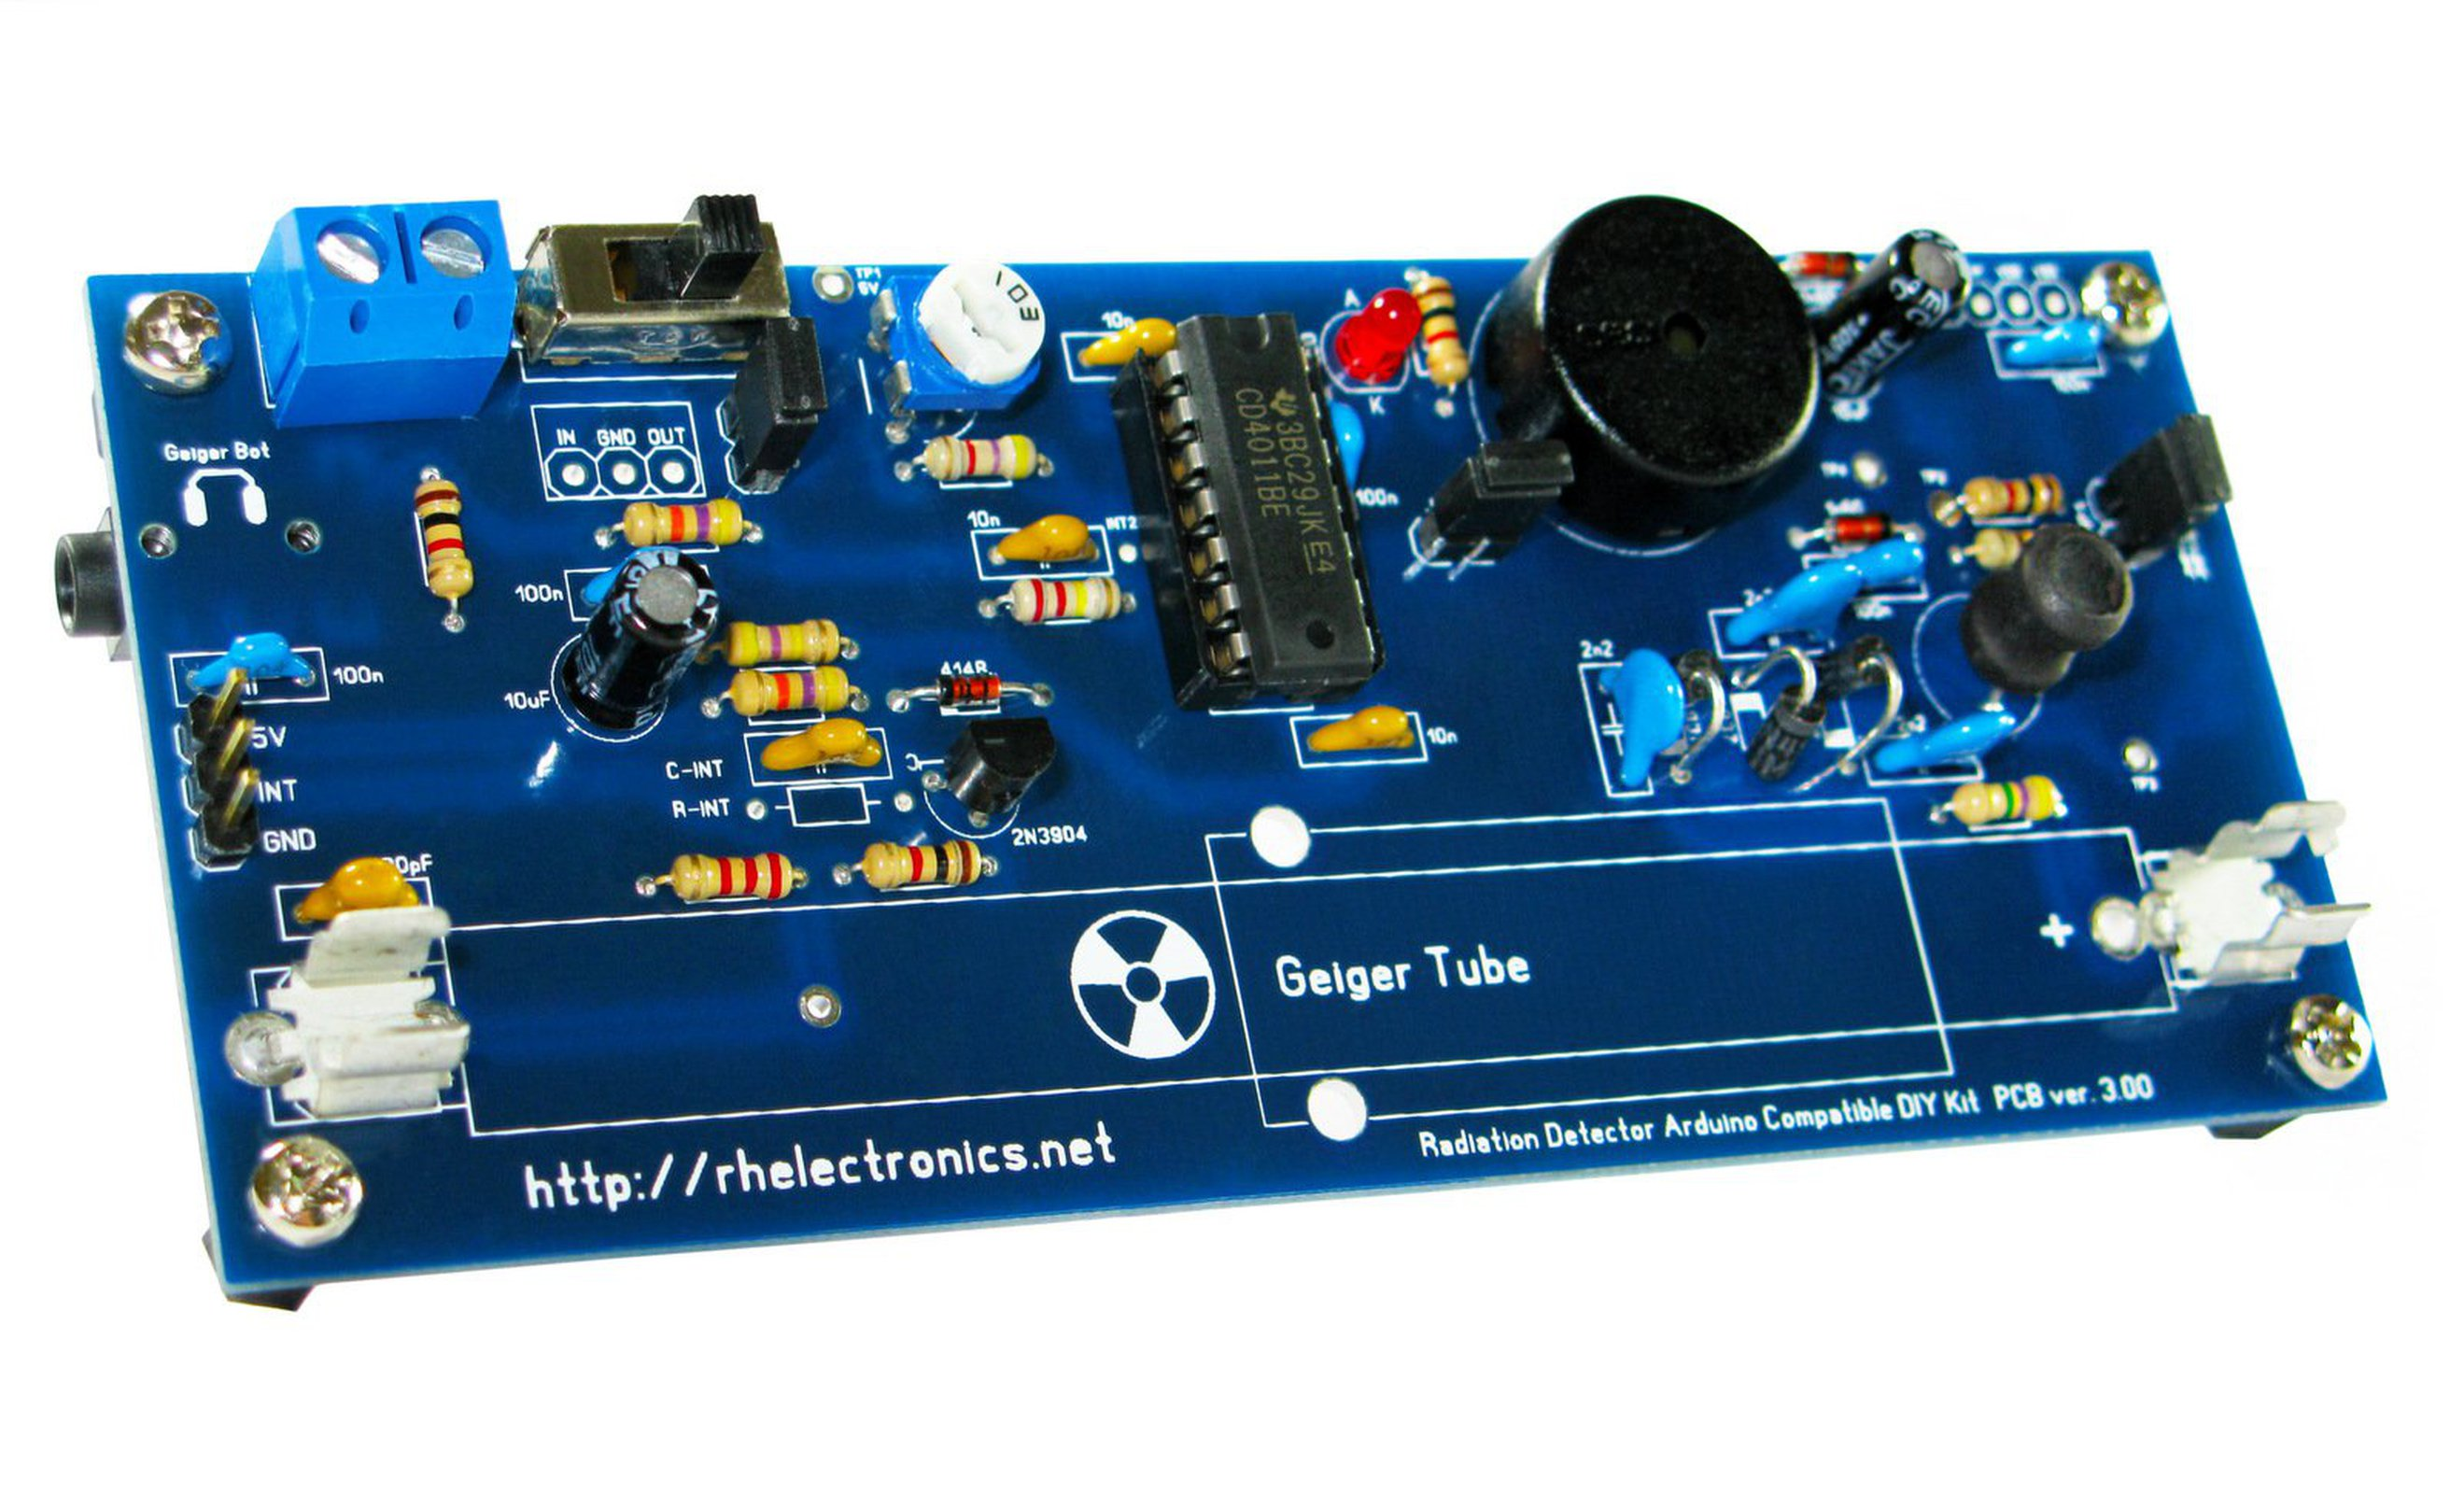 Geiger Counter Radiation Detector Diy Kit From Rh Electronics On Tindie Schematic 2